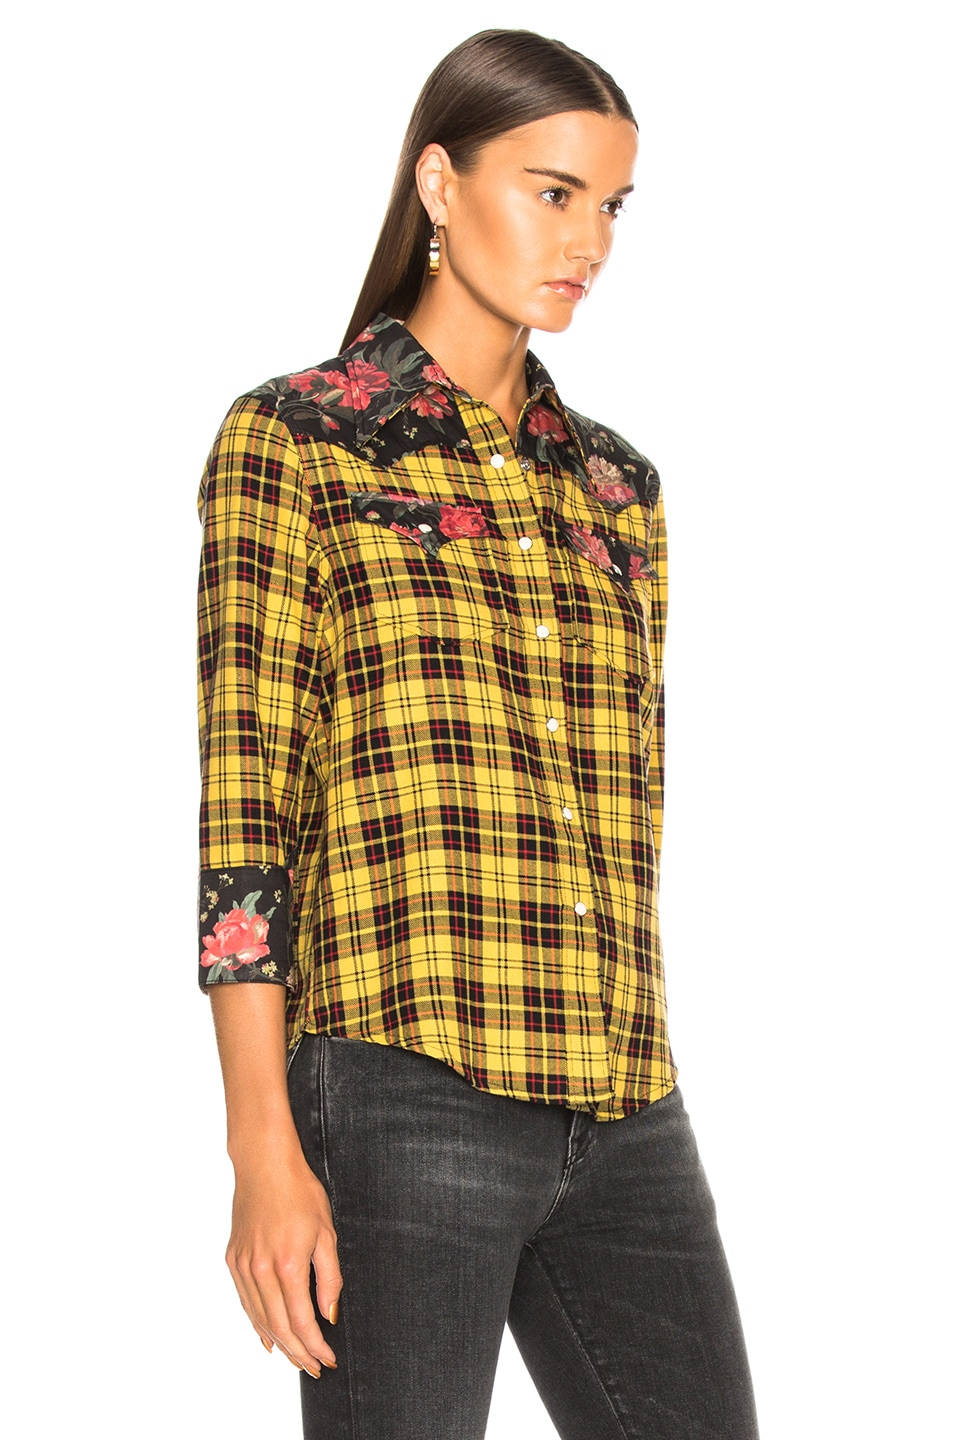 Image 2 of R13 Exaggerated Collar Cowboy Shirt in Yellow & Black Floral